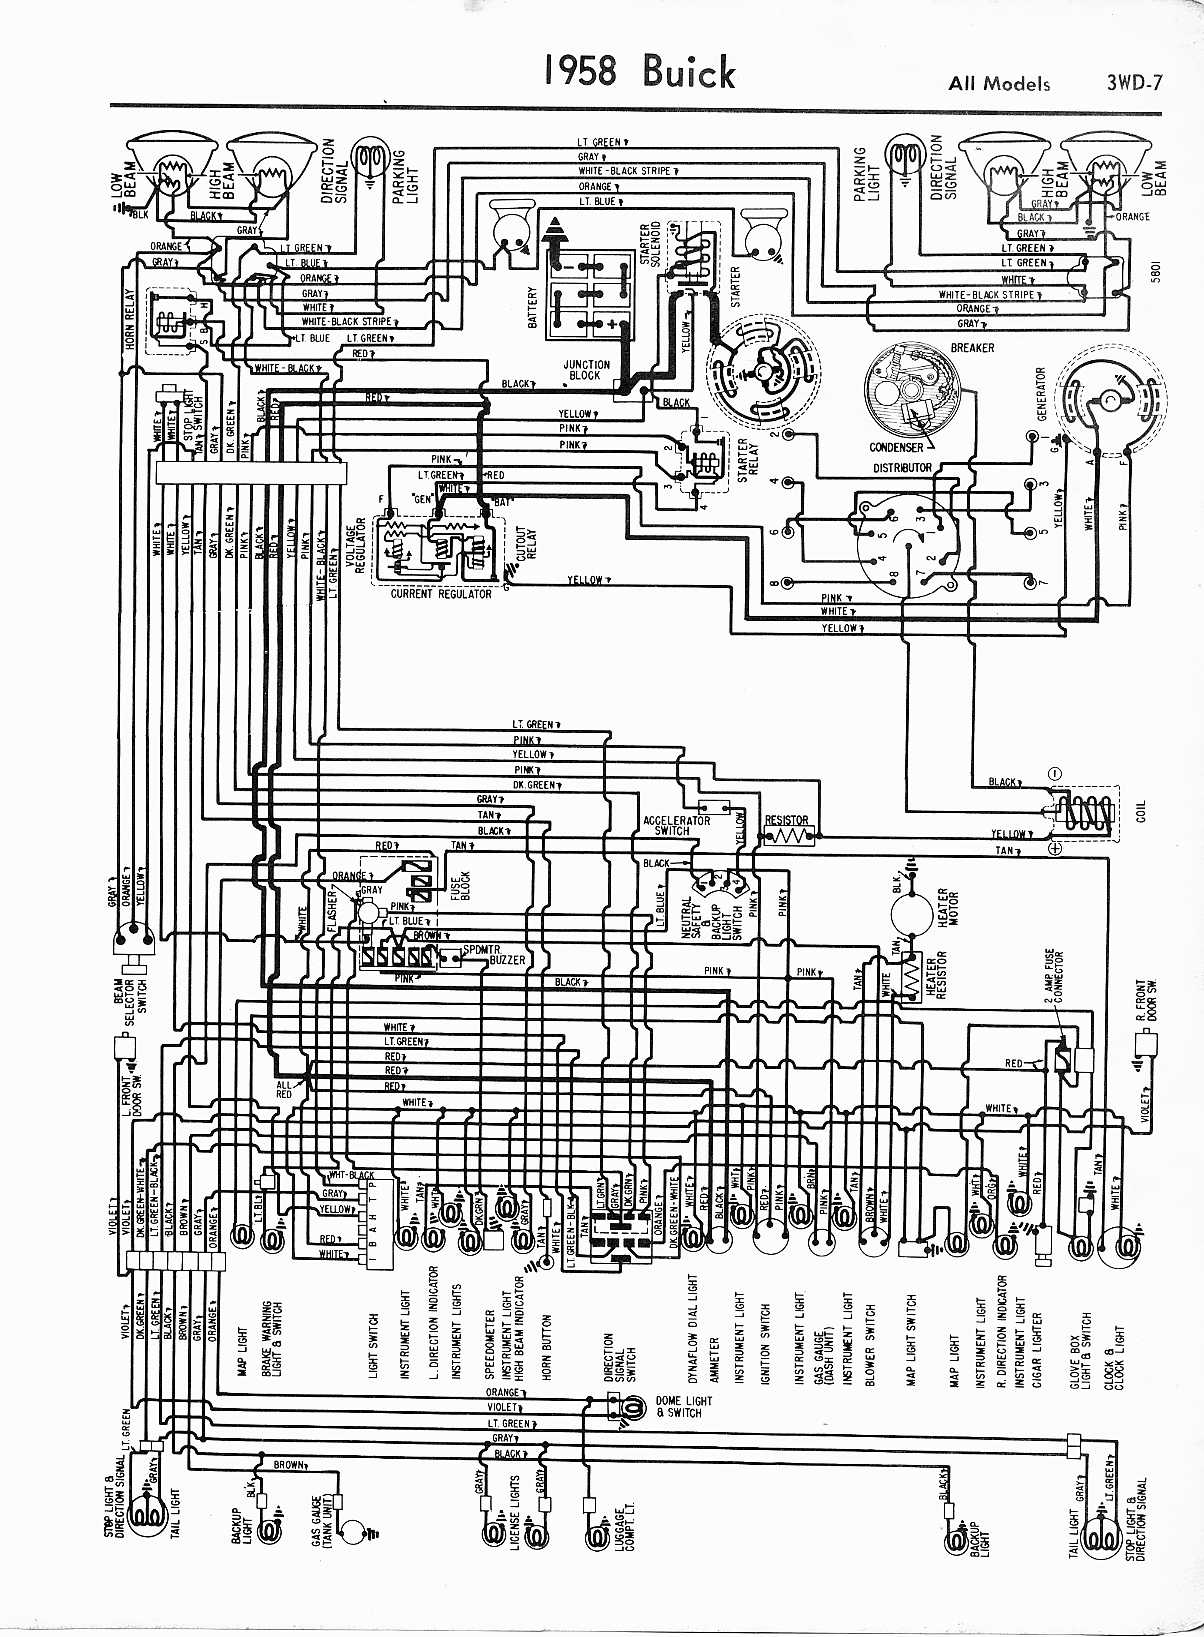 Buick Wiring Diagrams 1957 1965 Of 1958 Plymouth V8 All Models